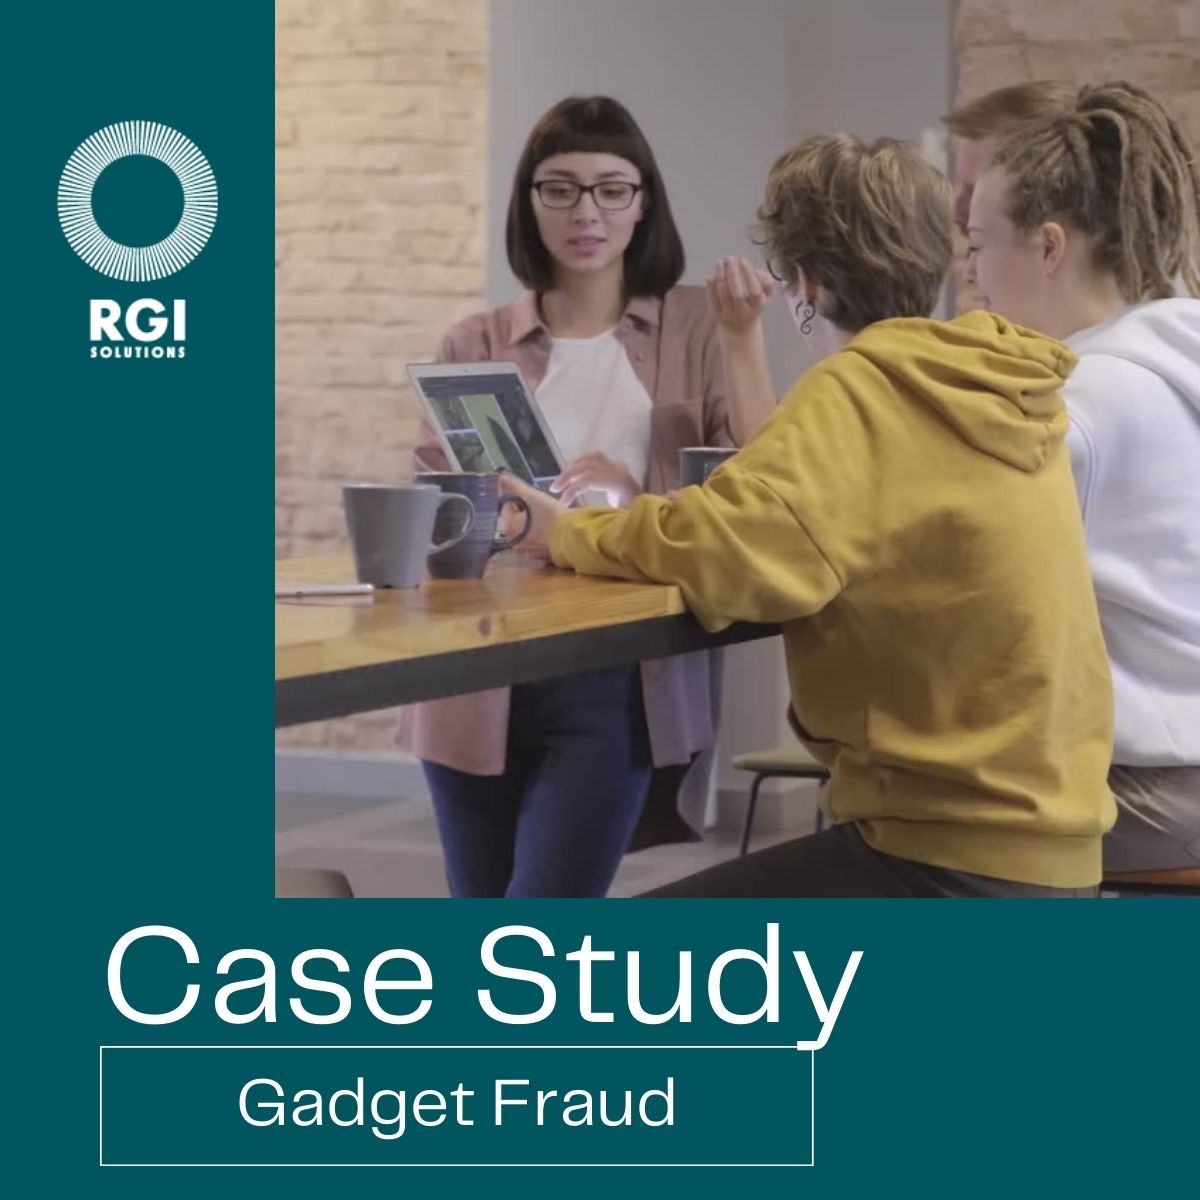 Gadget Fraud